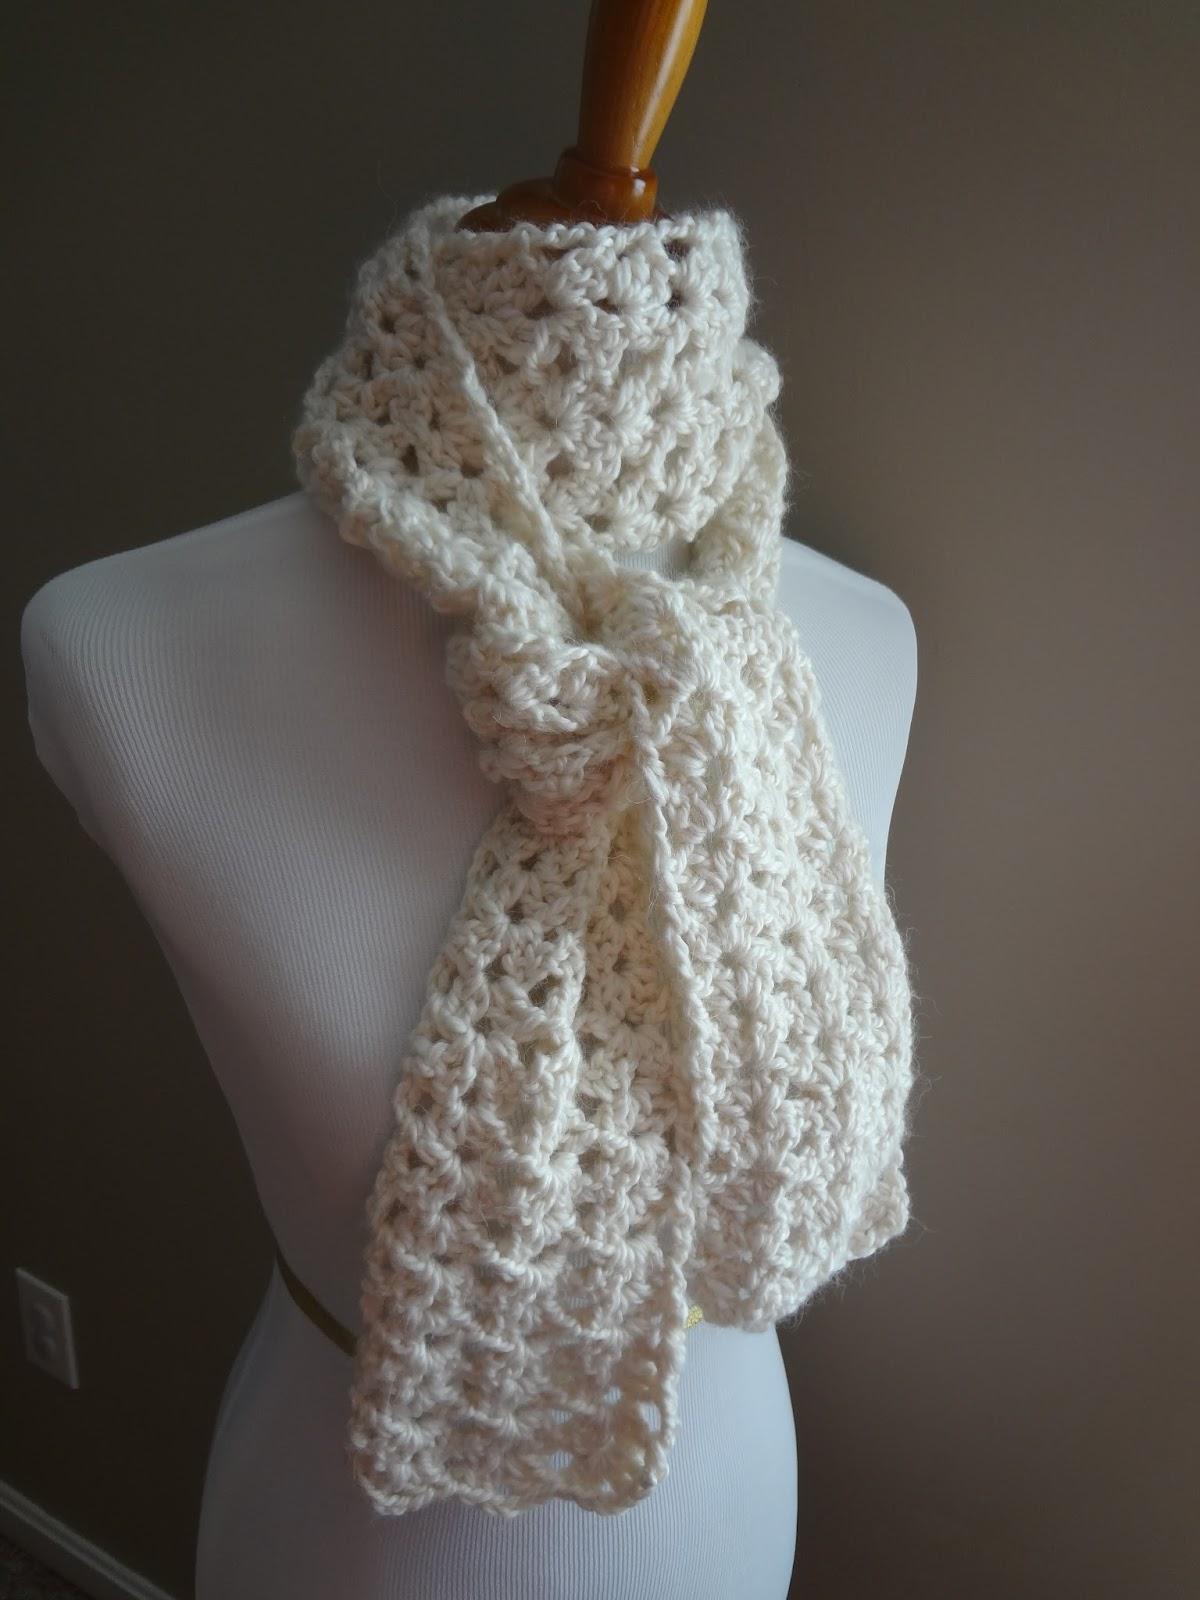 Free Crochet Patterns For Dressy Scarves : Fiber Flux: Free Crochet Pattern...Vanilla Bean Scarf!